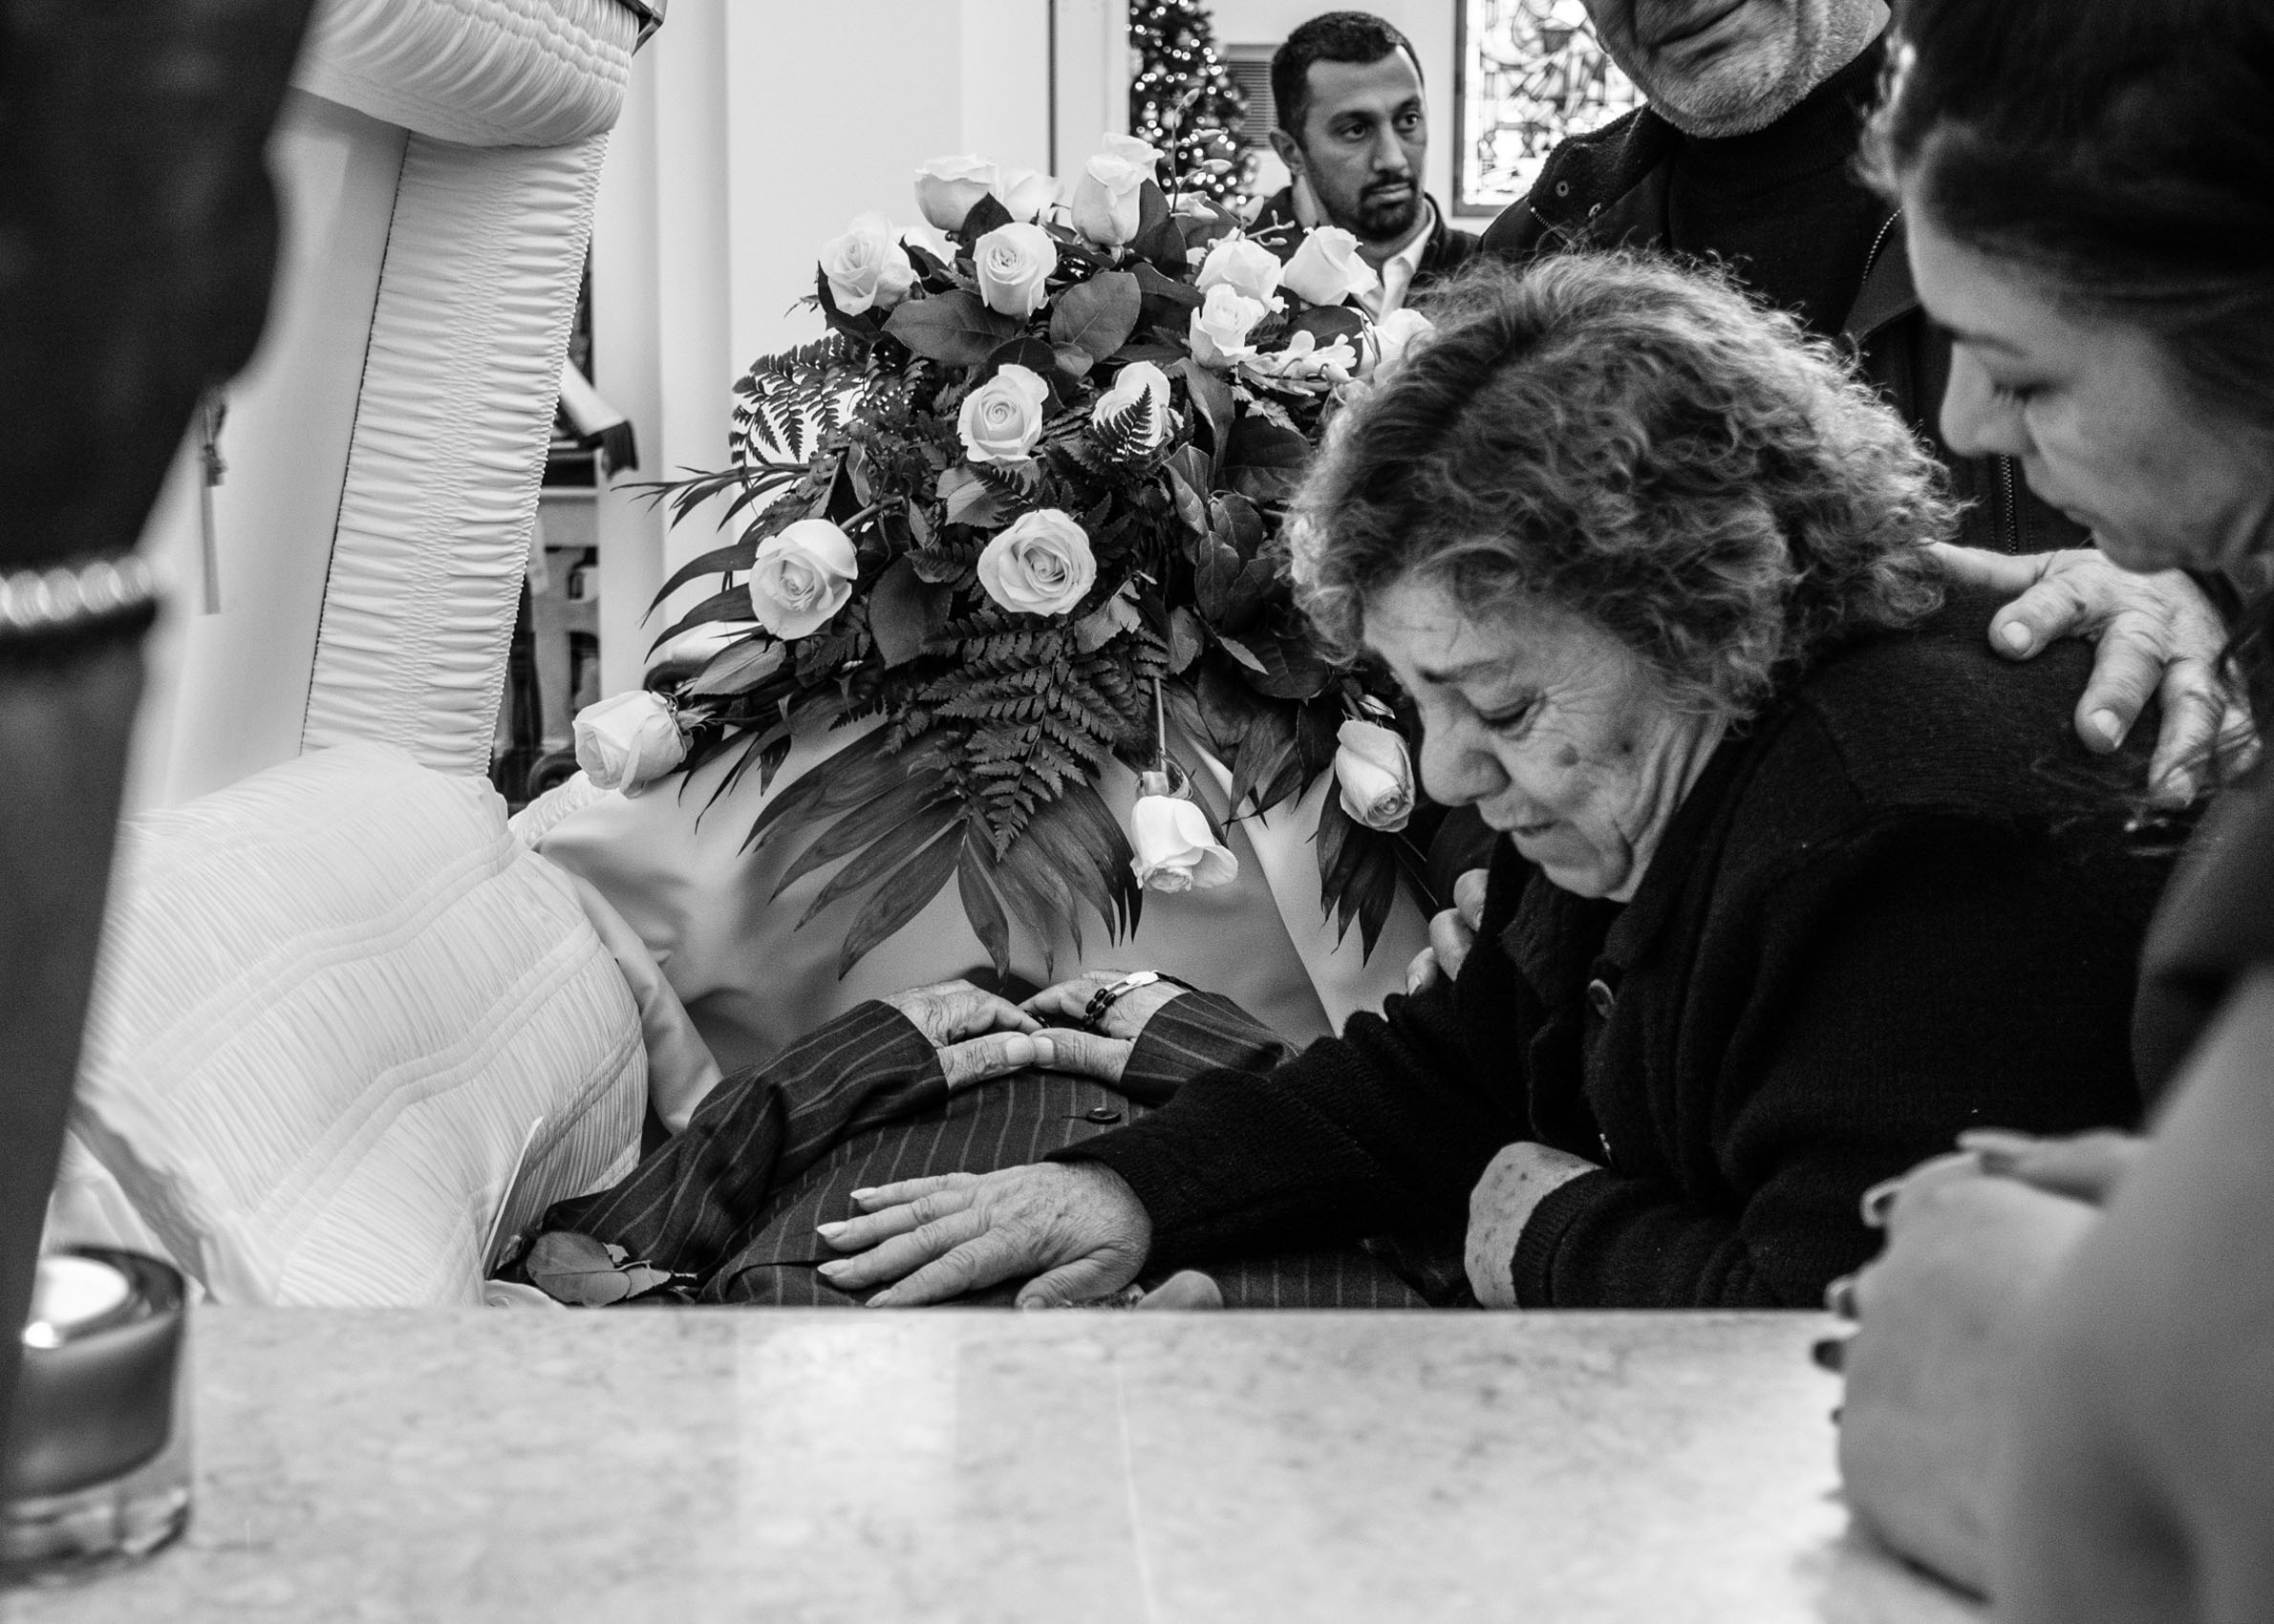 Los Angeles Street Photographer - Woman grieving over casket  by Ray Kachatorian